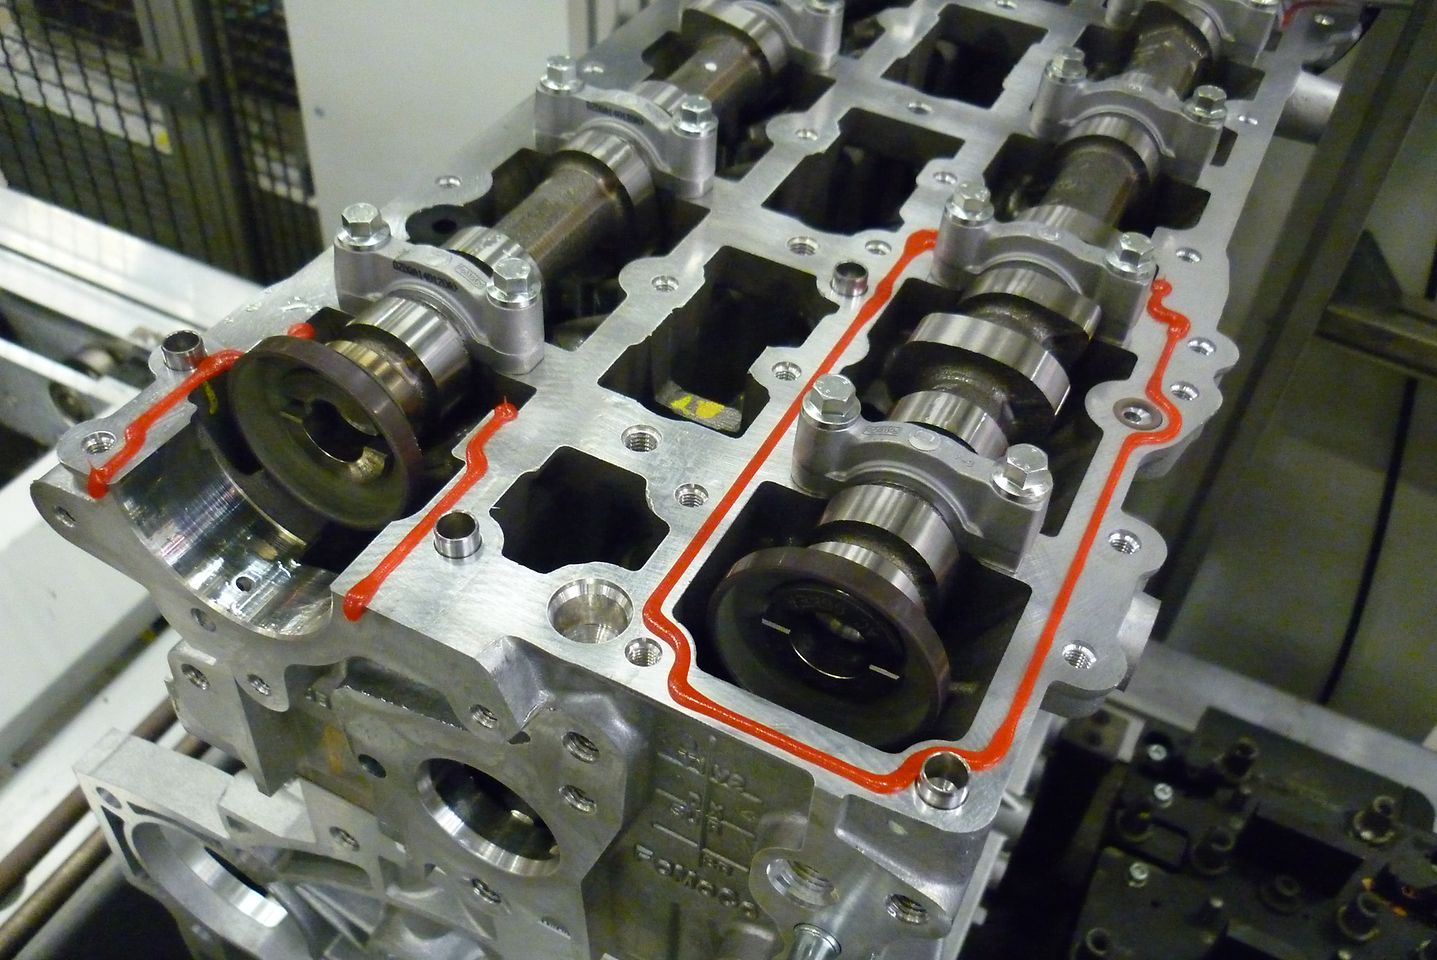 Loctite 5189 is used to seal highly stressed joints on the 1.6 liter EcoBoost engines at Ford